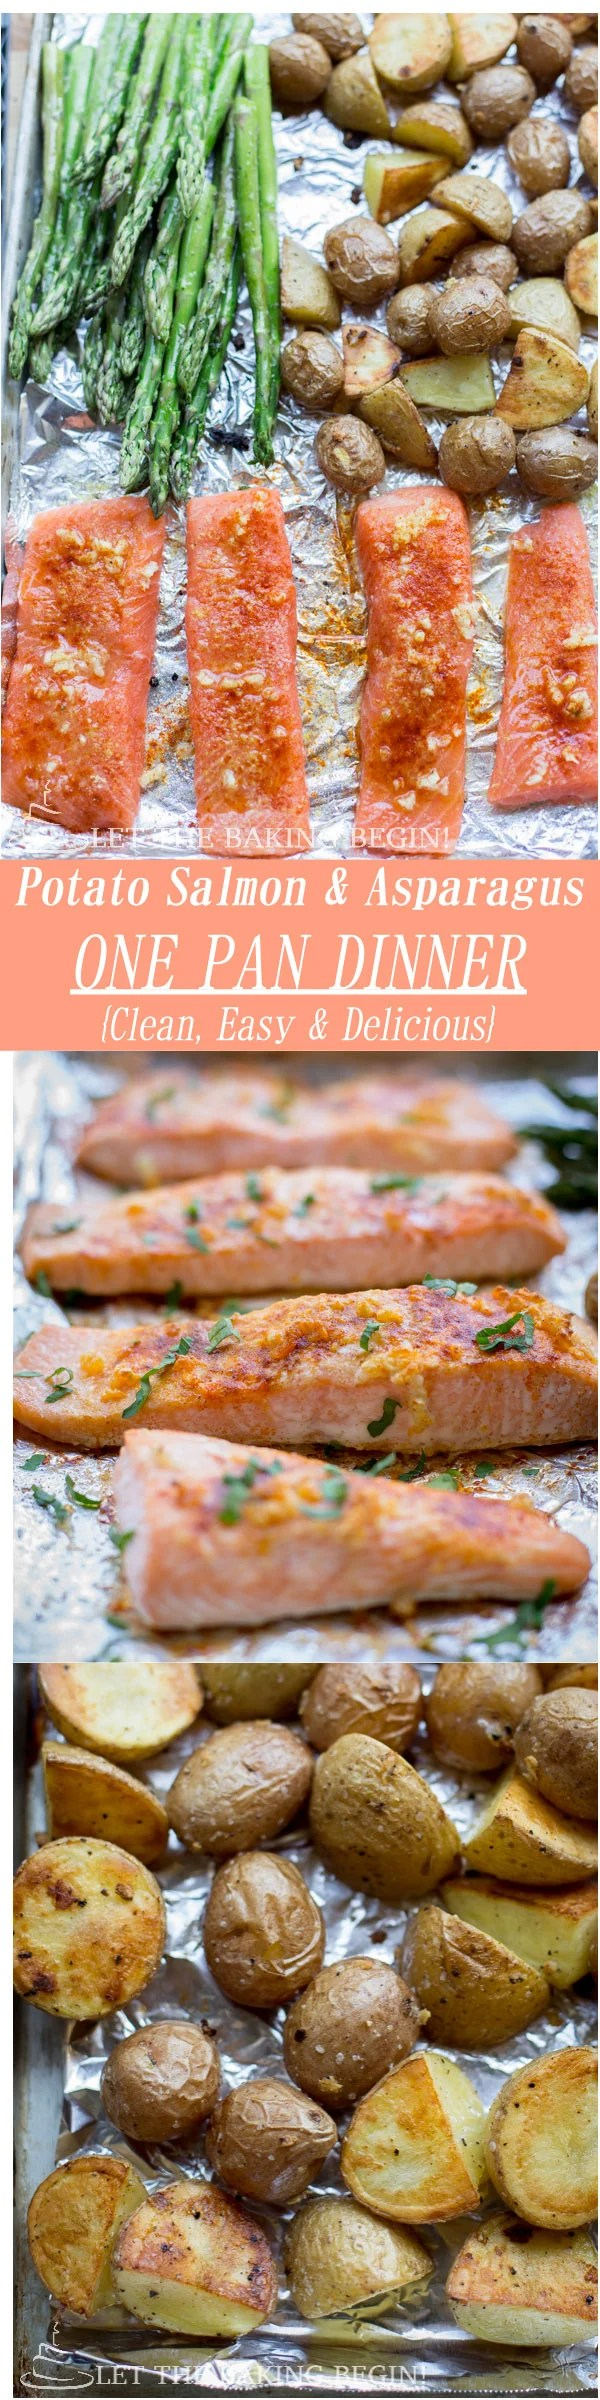 Potato Salmon Asparagus One Pan Dinner €� Clean, Easy And Delicious Way To  Make Dinner